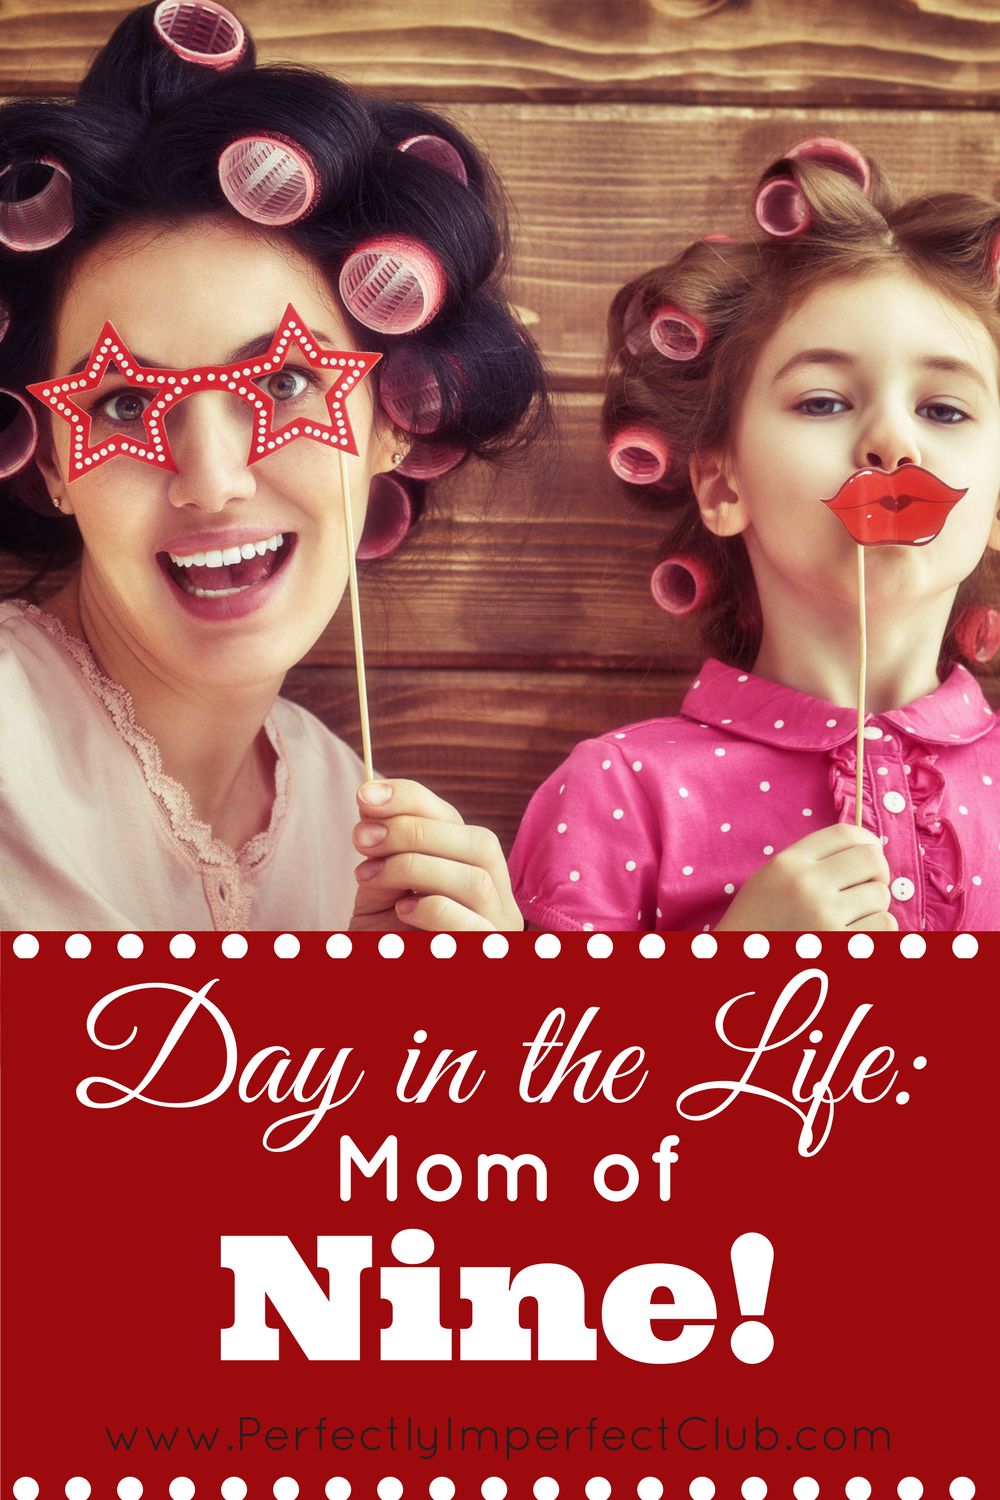 Ever wondered how a mother of nine children spends her day?|Large Family|Day in the Life